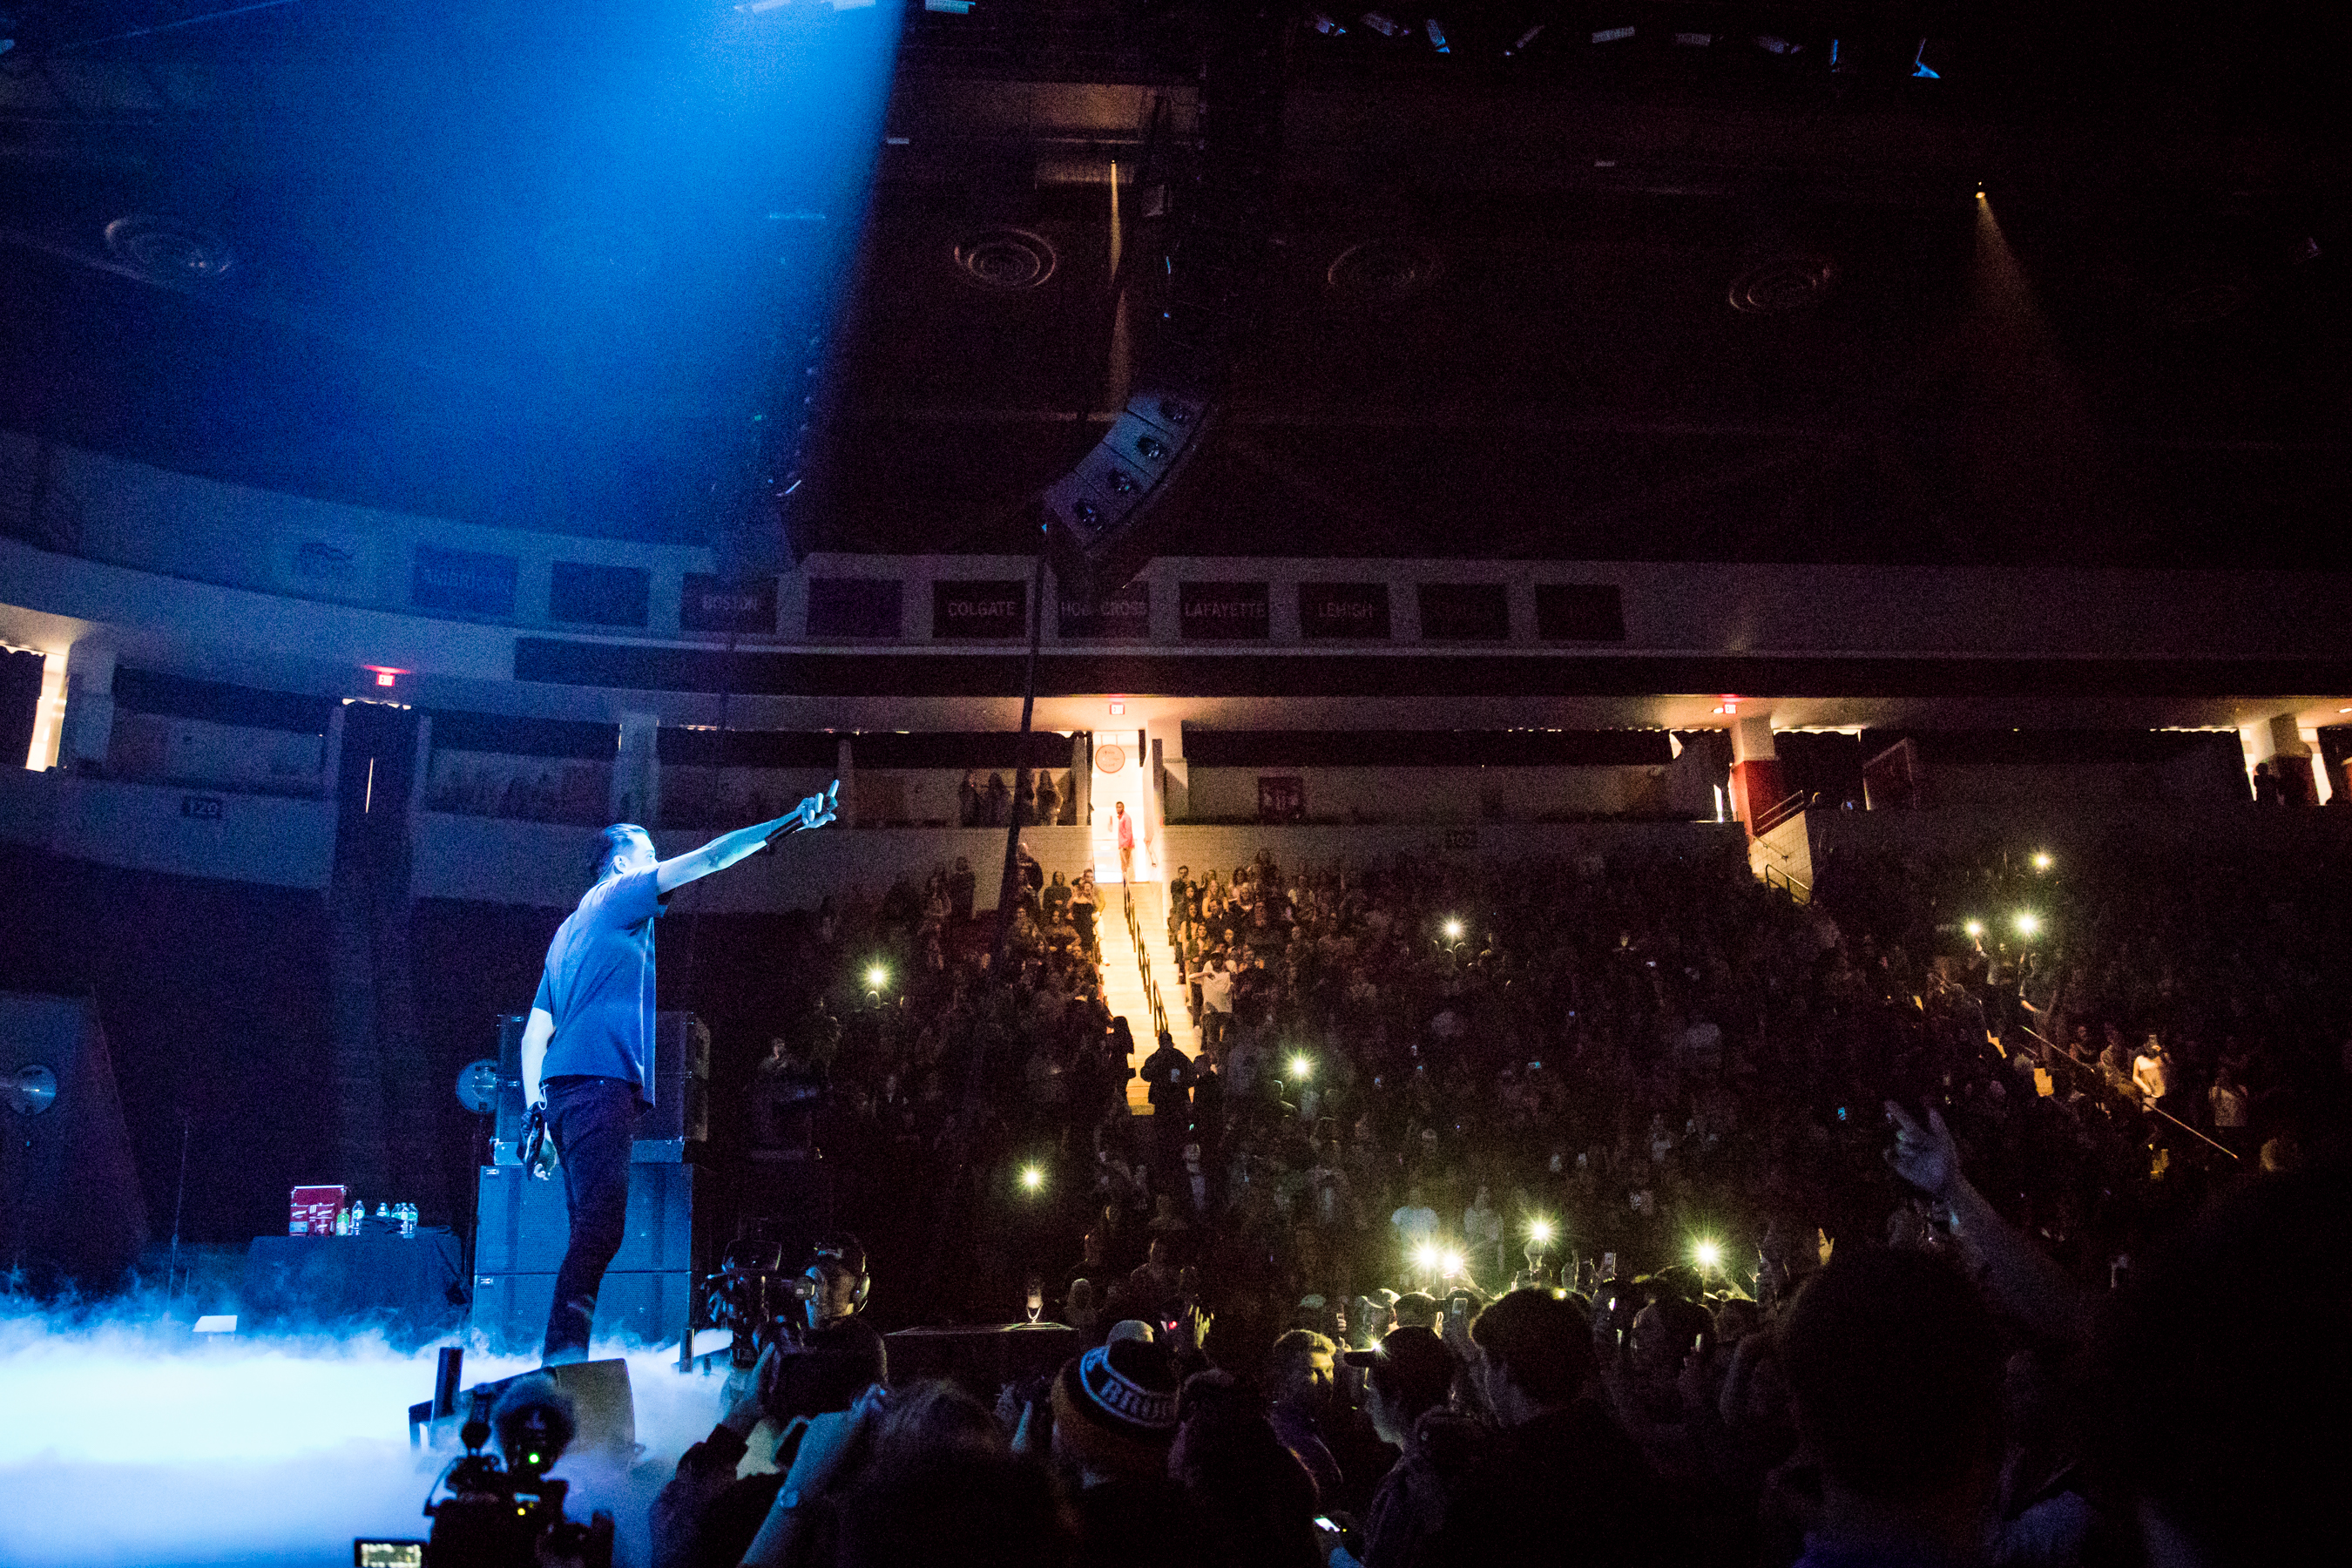 RECAP: G-Eazy Presents The Beautiful & Damned Tour (Boston